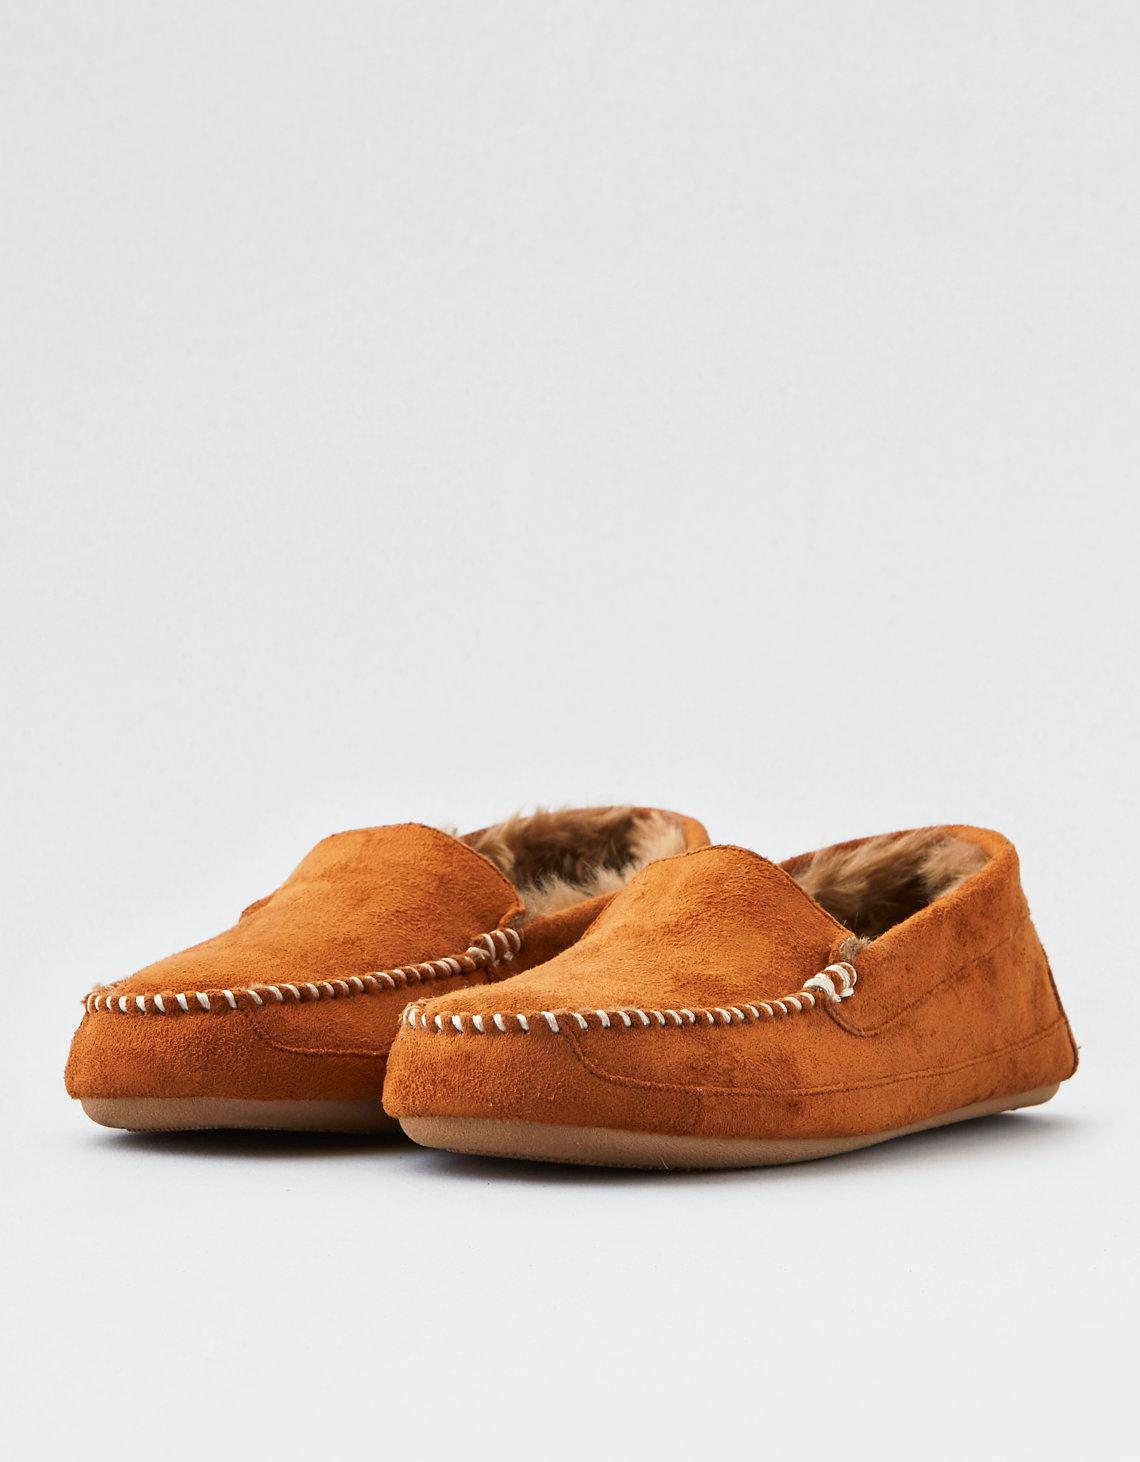 4ad3d0036e4d Lyst - American Eagle Suede Moccasin Slipper in Brown for Men